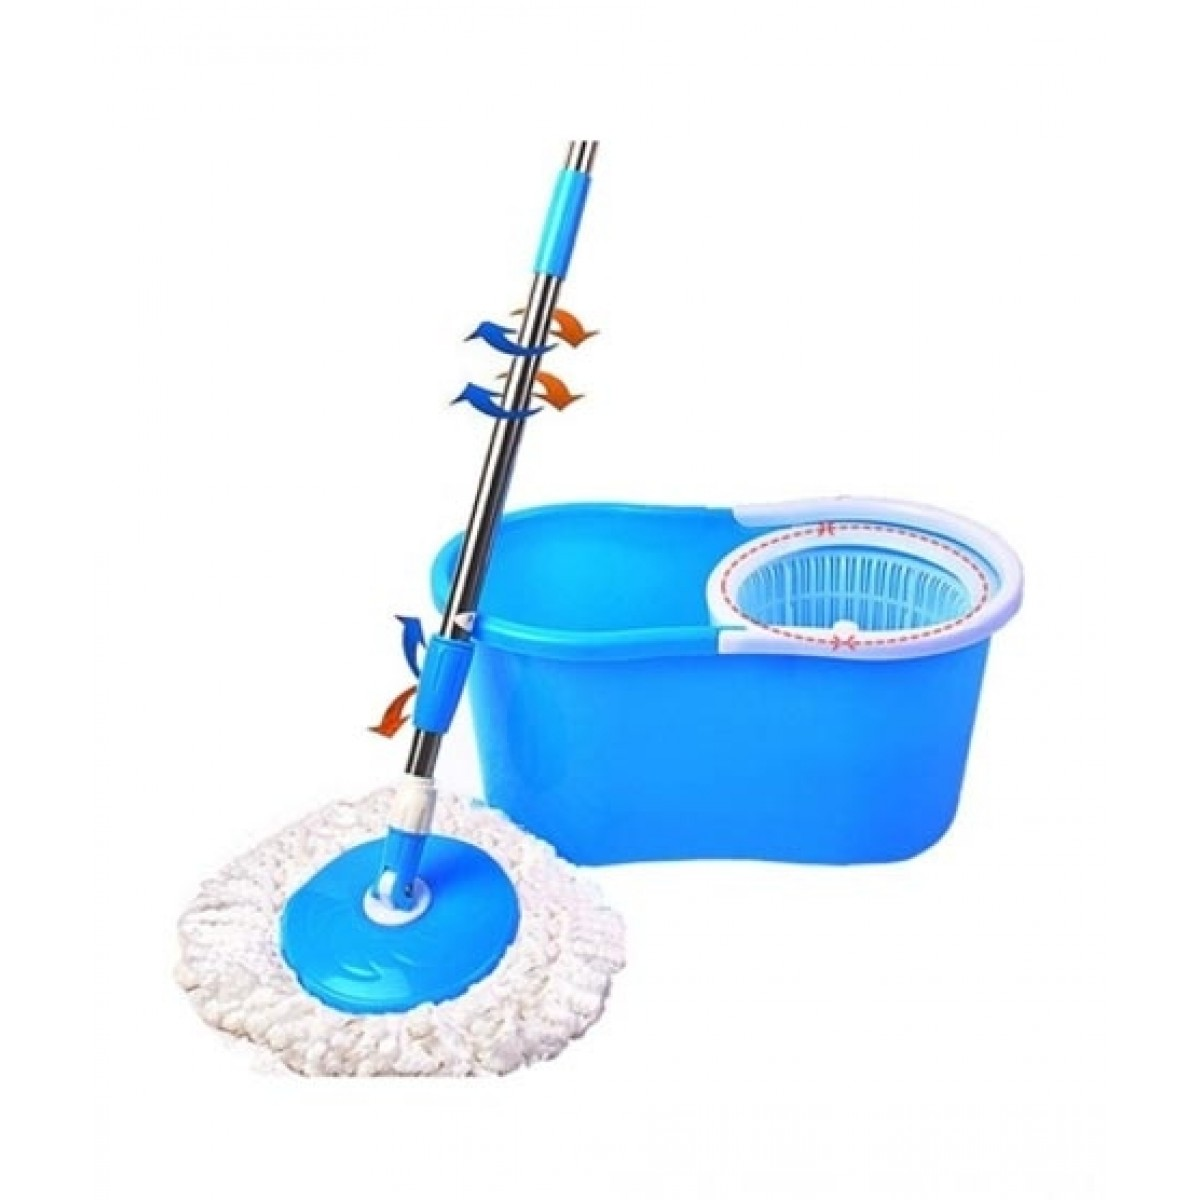 Hatimi Store 360 Degree Microfiber Spin Mop